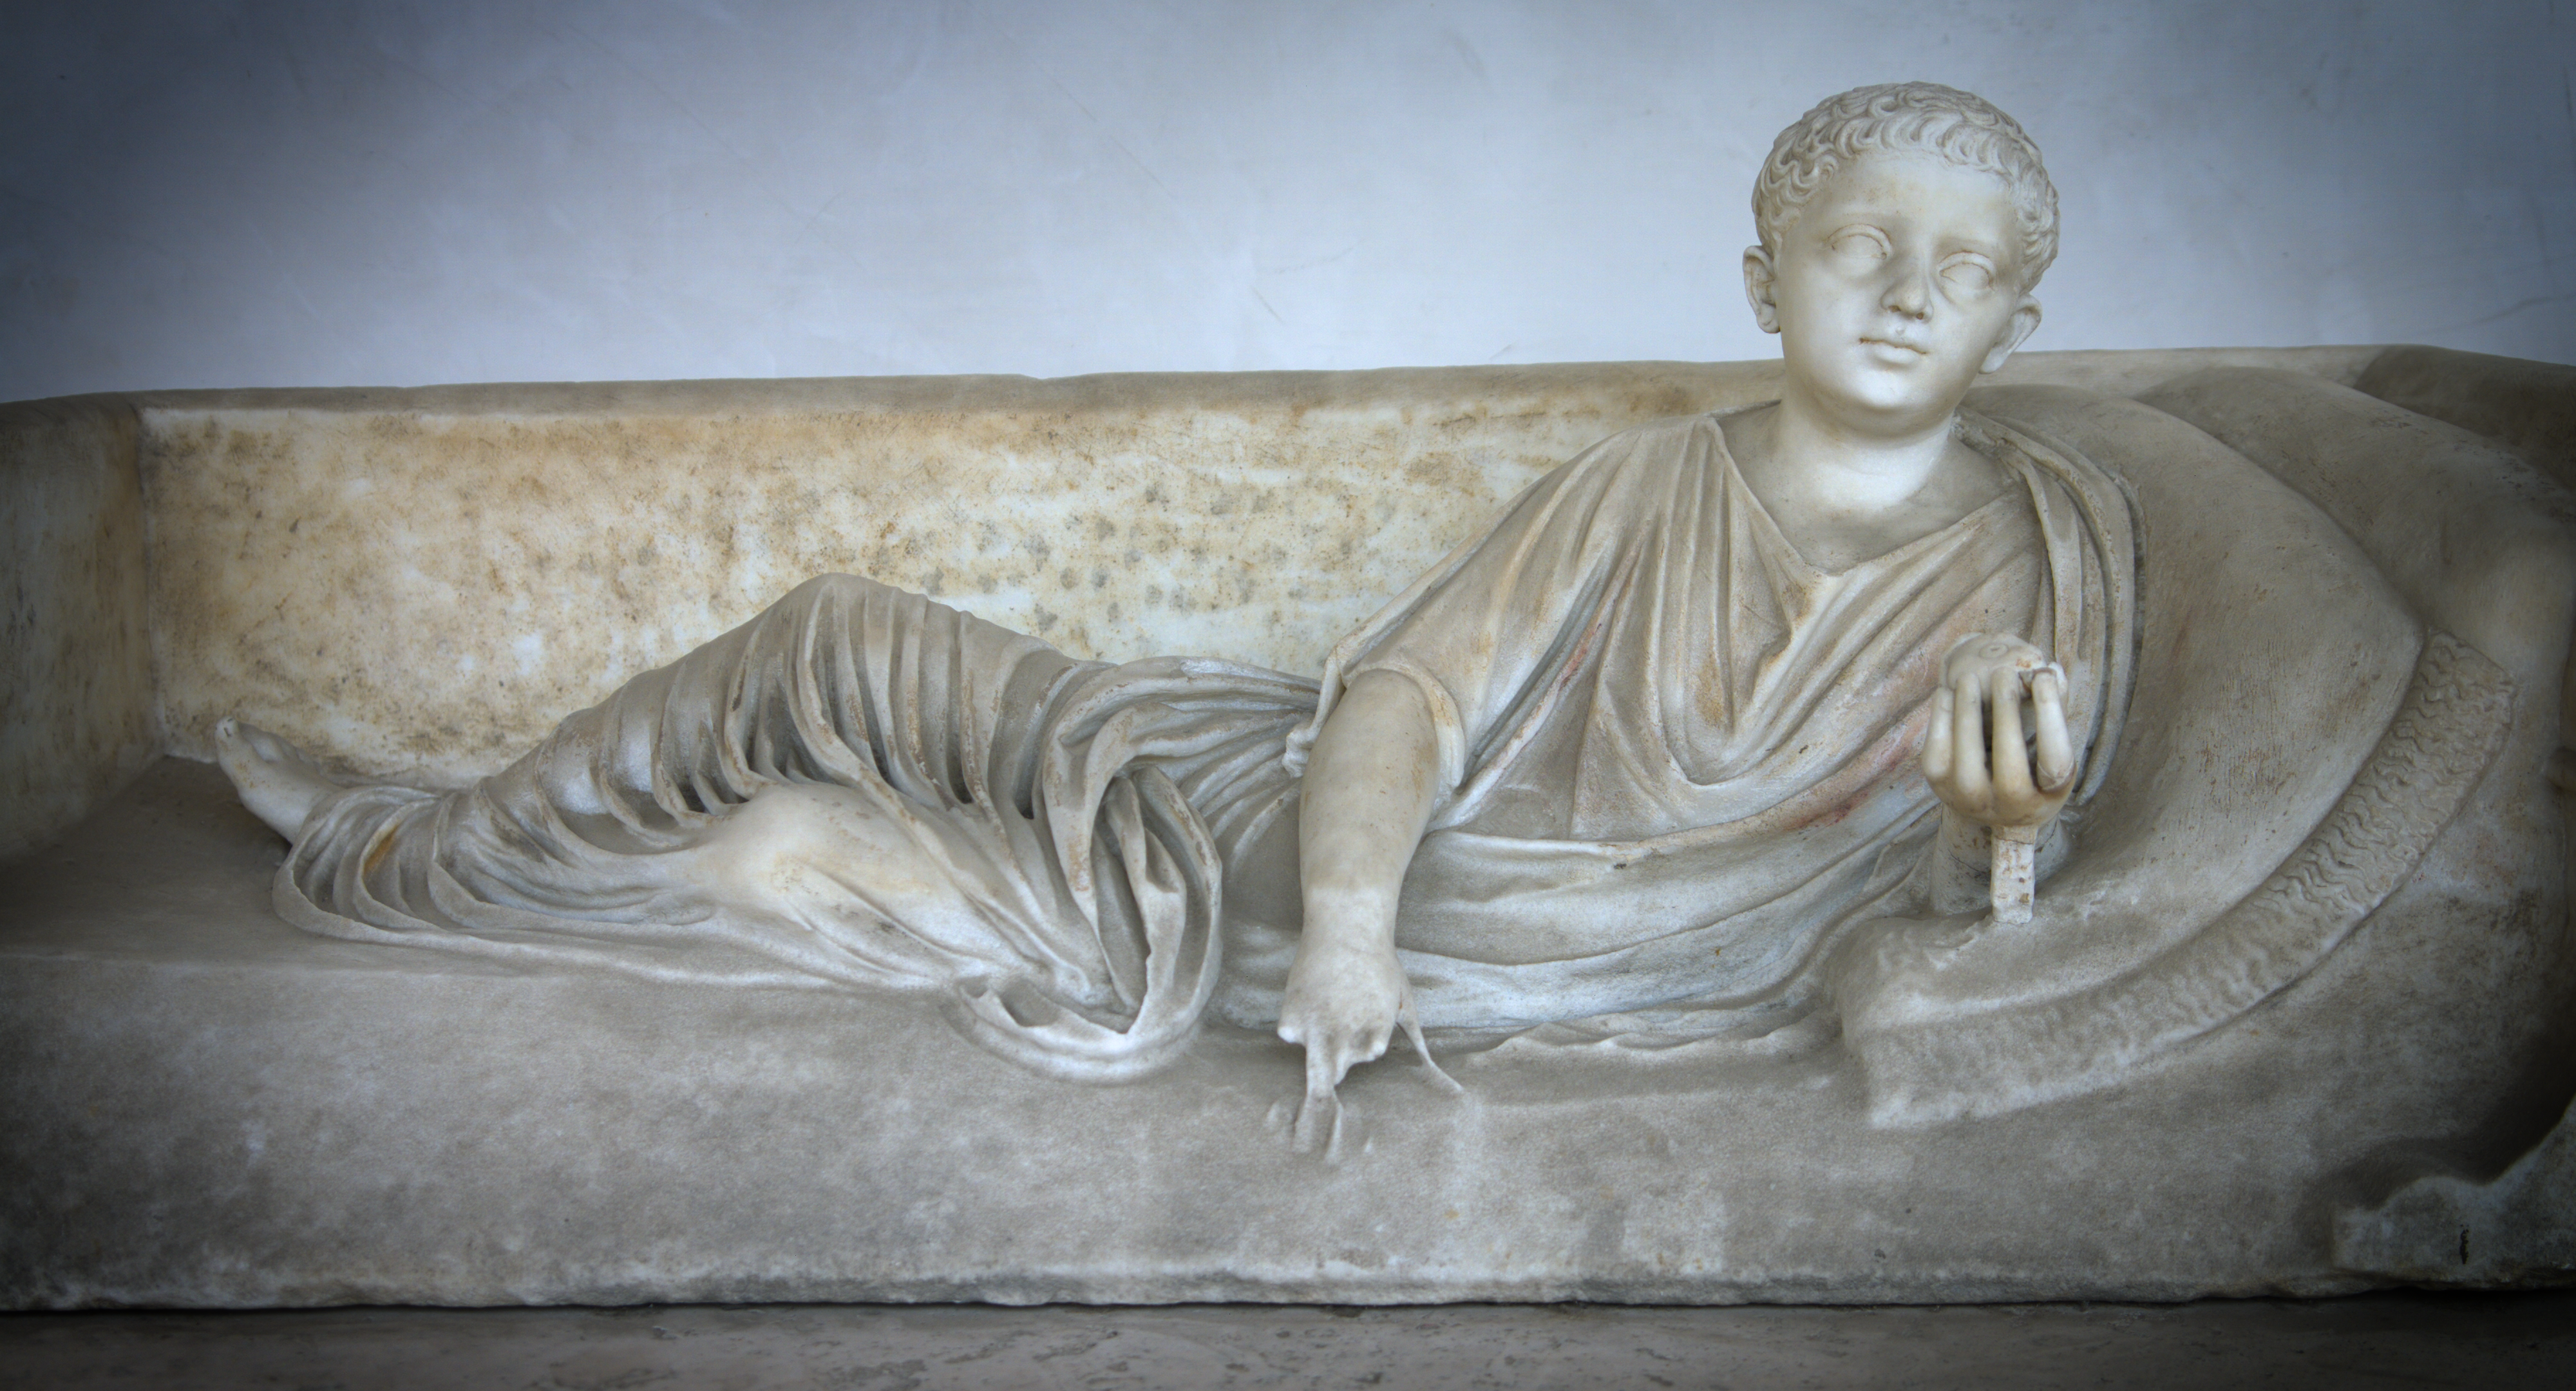 Marble statue of a young man in a toga holding a fruit